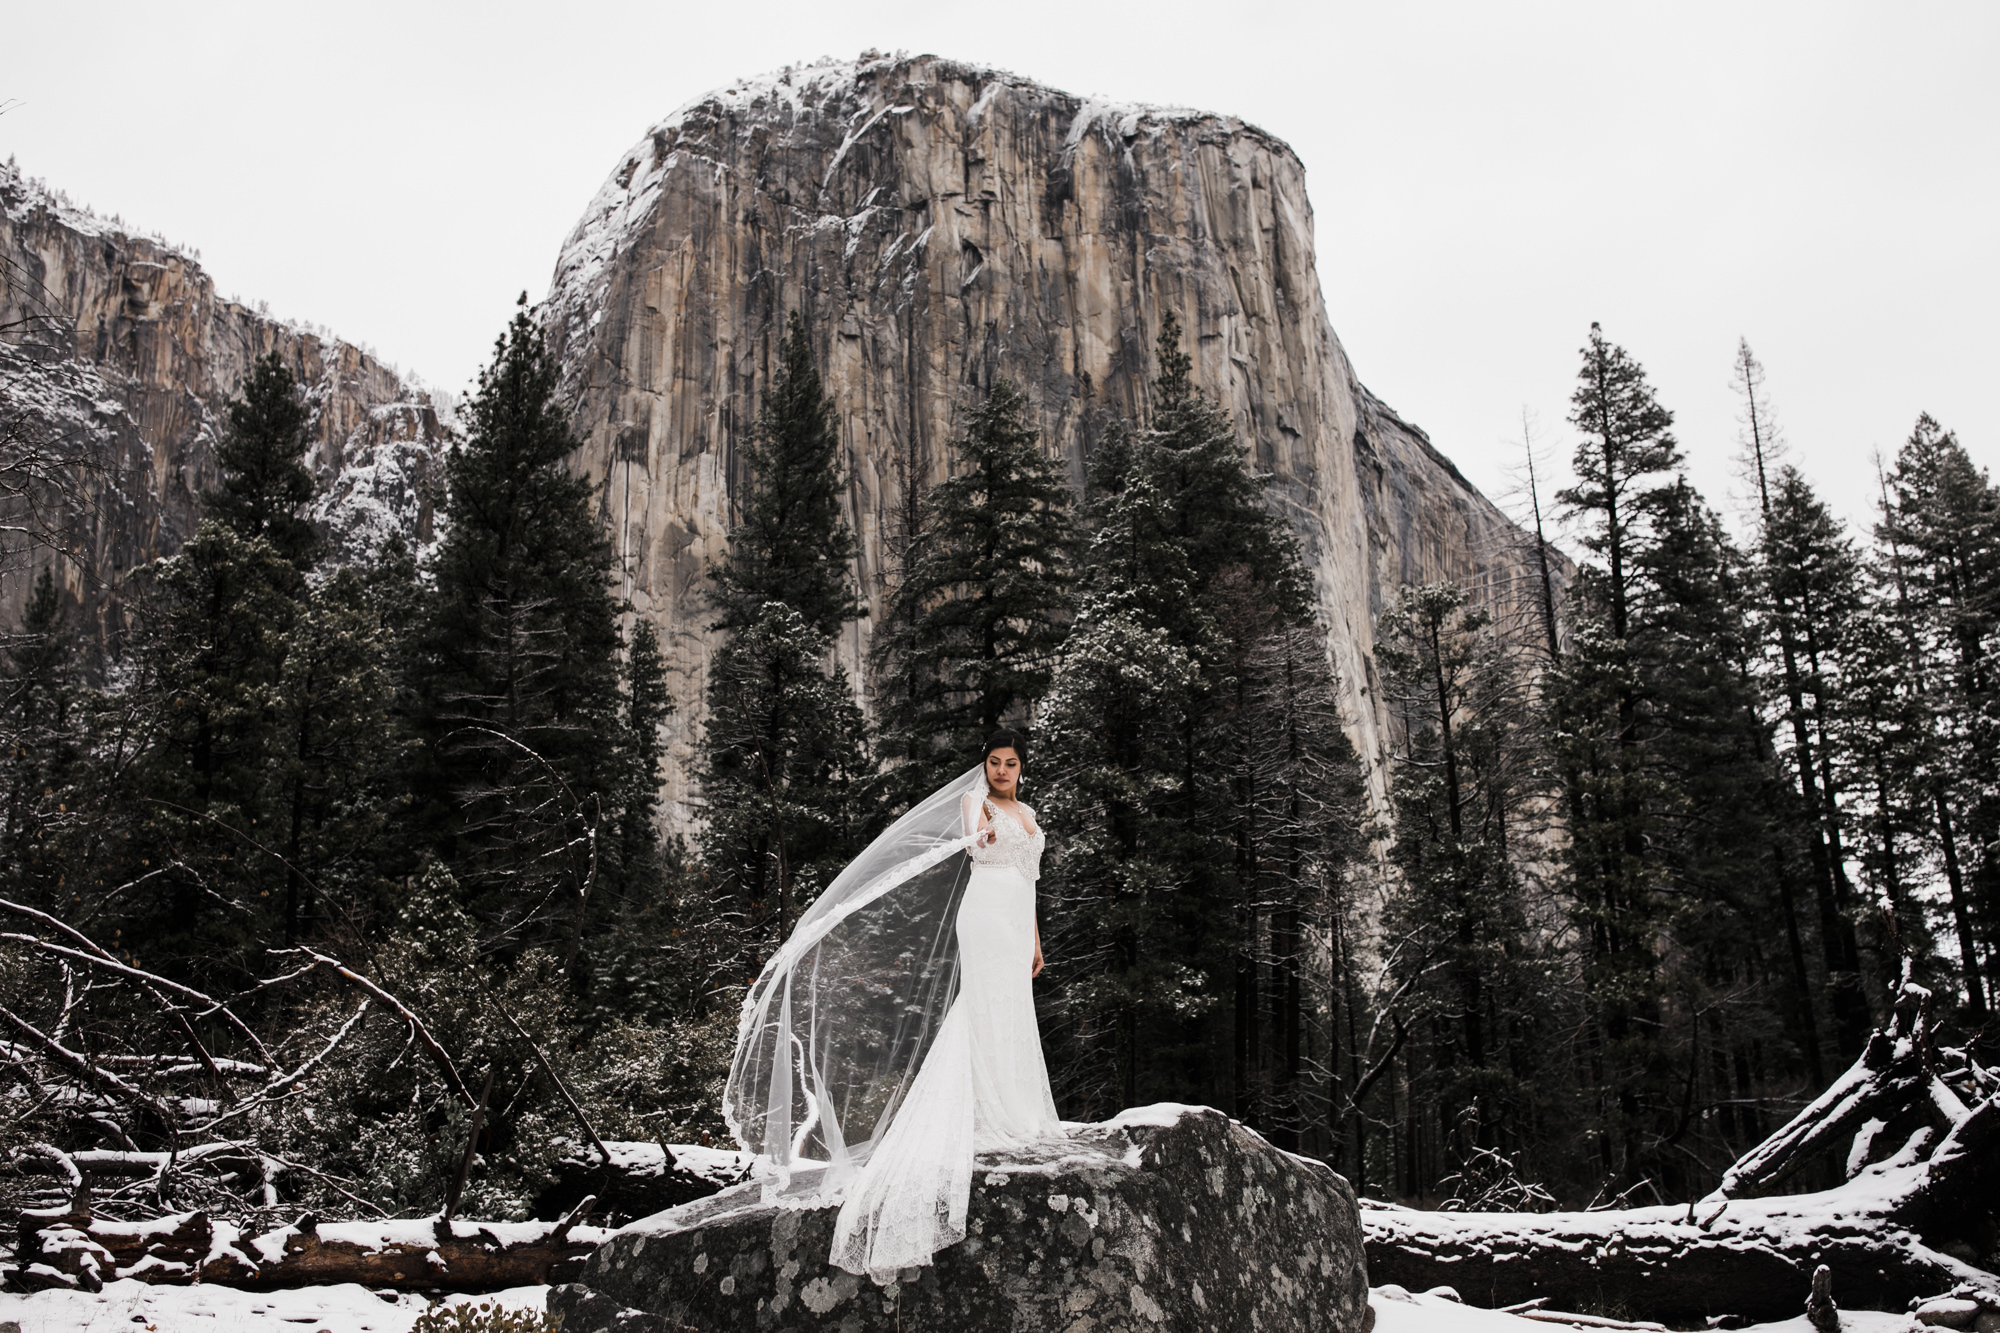 eloping in yosemite national park in the winter